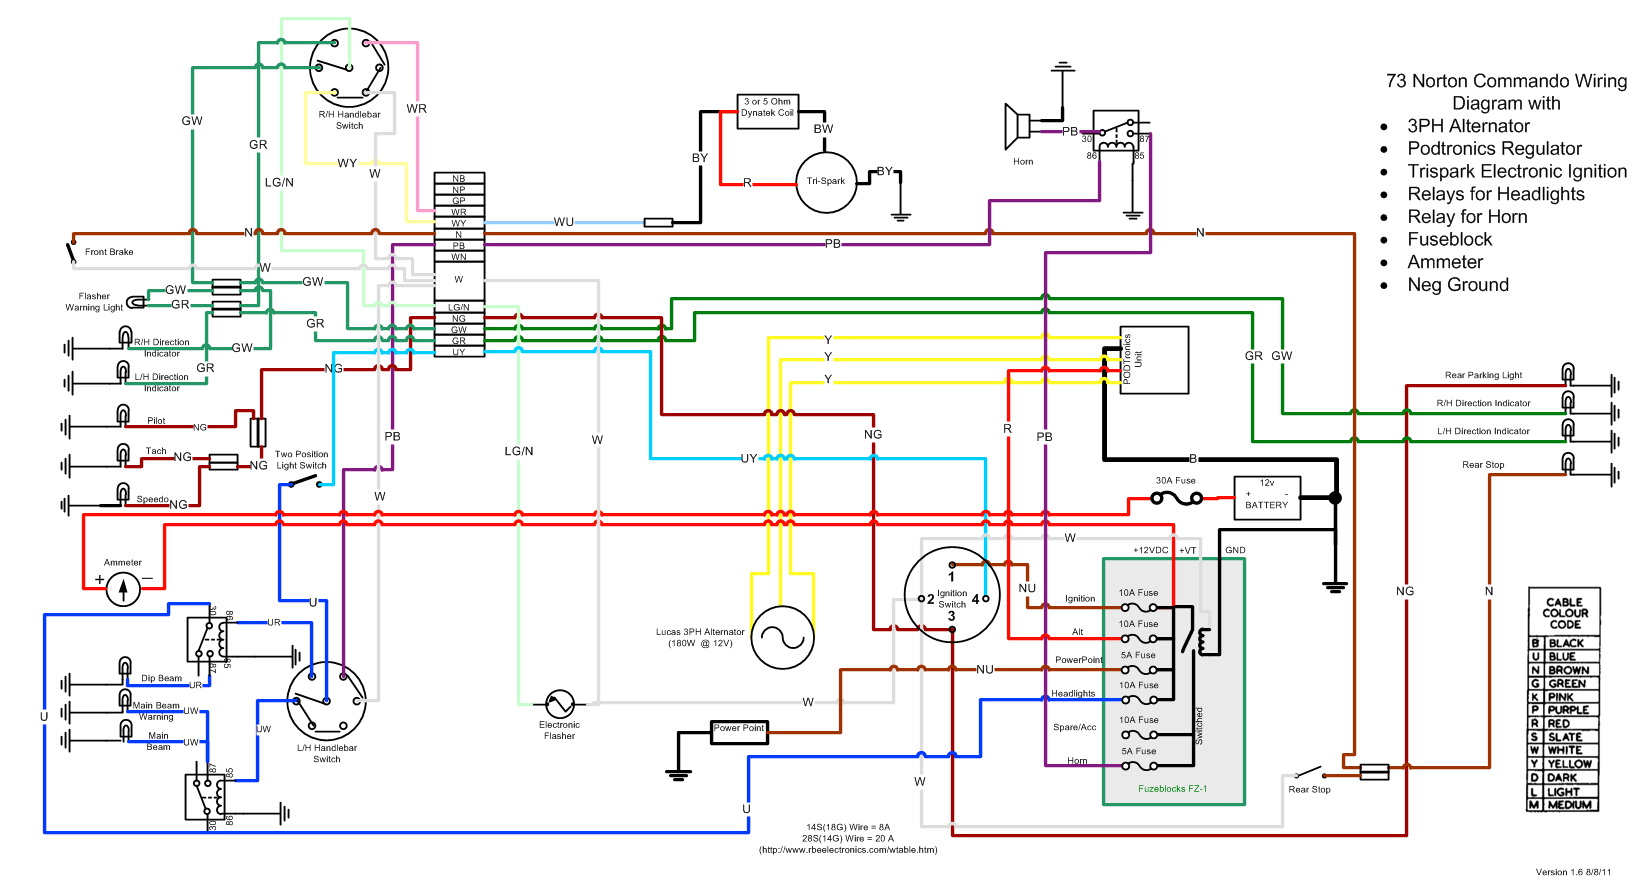 73wiringdiagram?resize\\\\\\\\\\\\\\\\\\\\\\\\\\\\\\\\\\\\\\\=665%2C359 wiring diagram for international dt4300,diagram \u2022 indy500 co  at virtualis.co